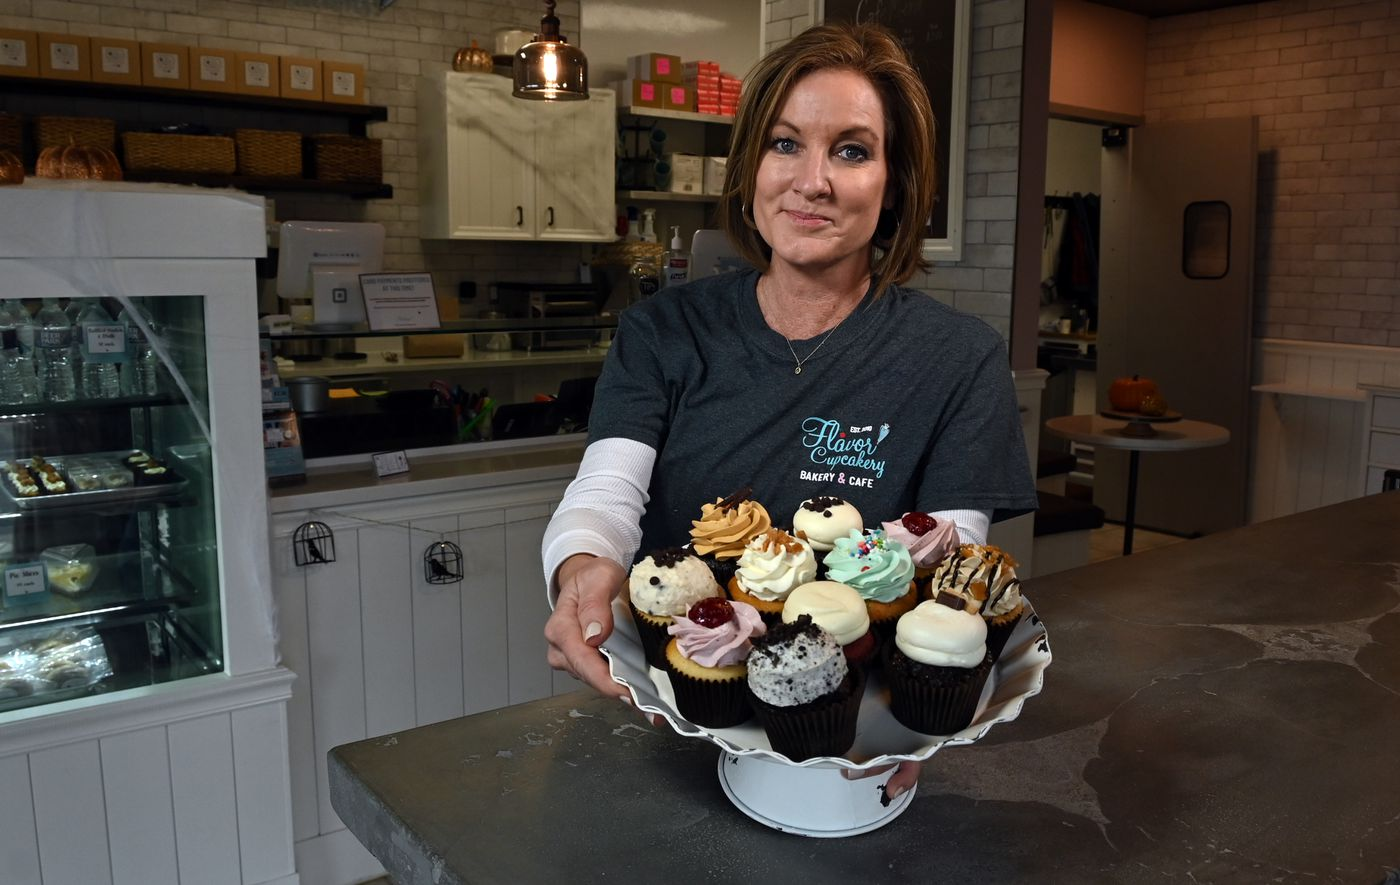 Shelley Standard, owner of Flavor Cupcakery Bakery and Cafe, with a sampling of boutique cupcakes.